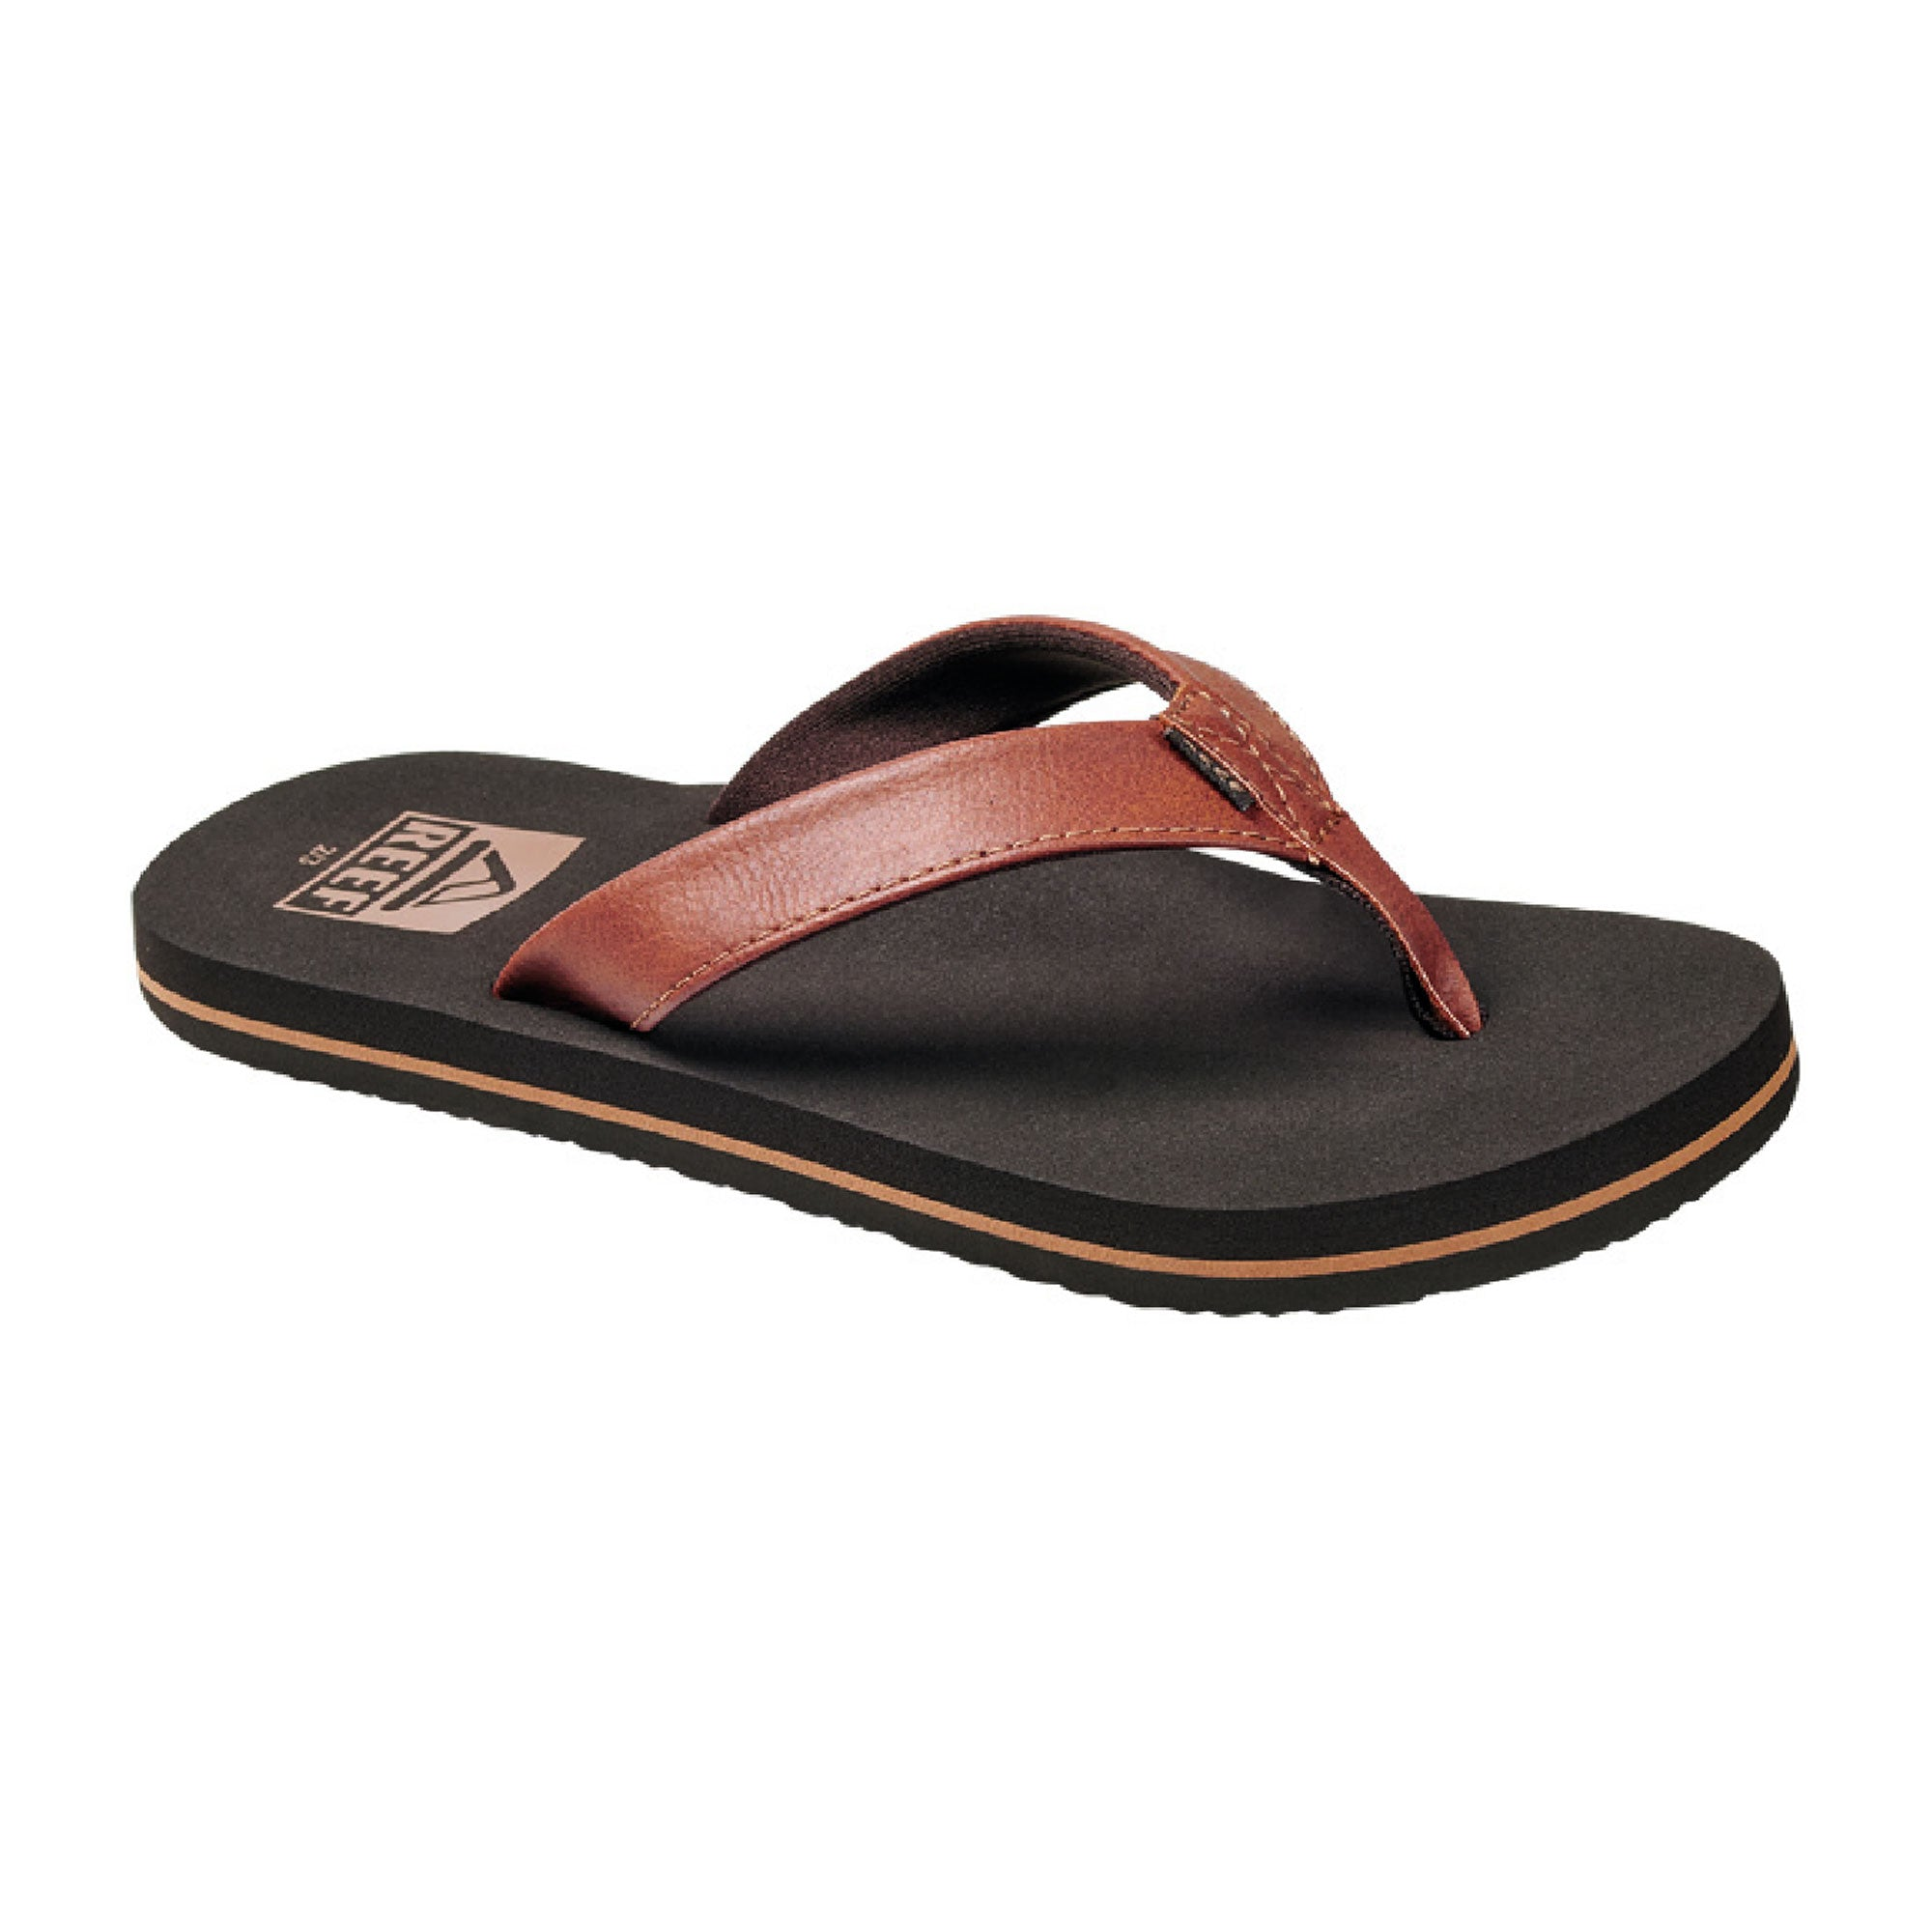 Reef Kids Twinpin Youth Sandals